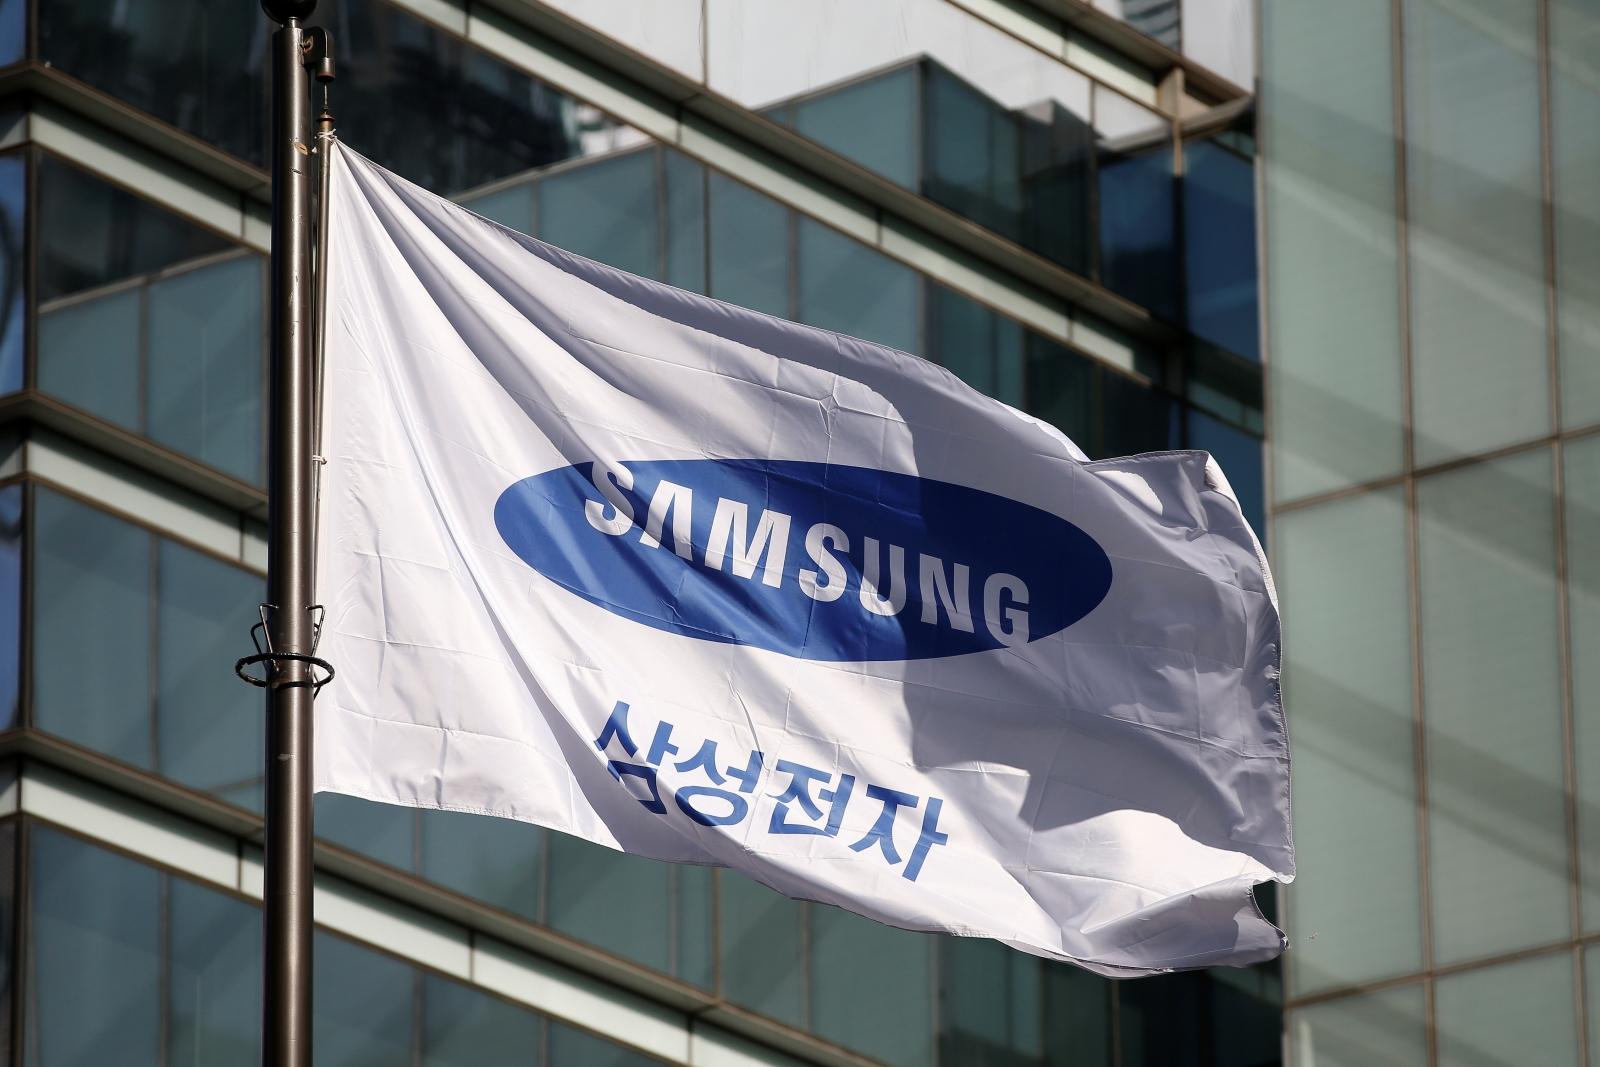 Samsung to invest $18 billion in memory chip business